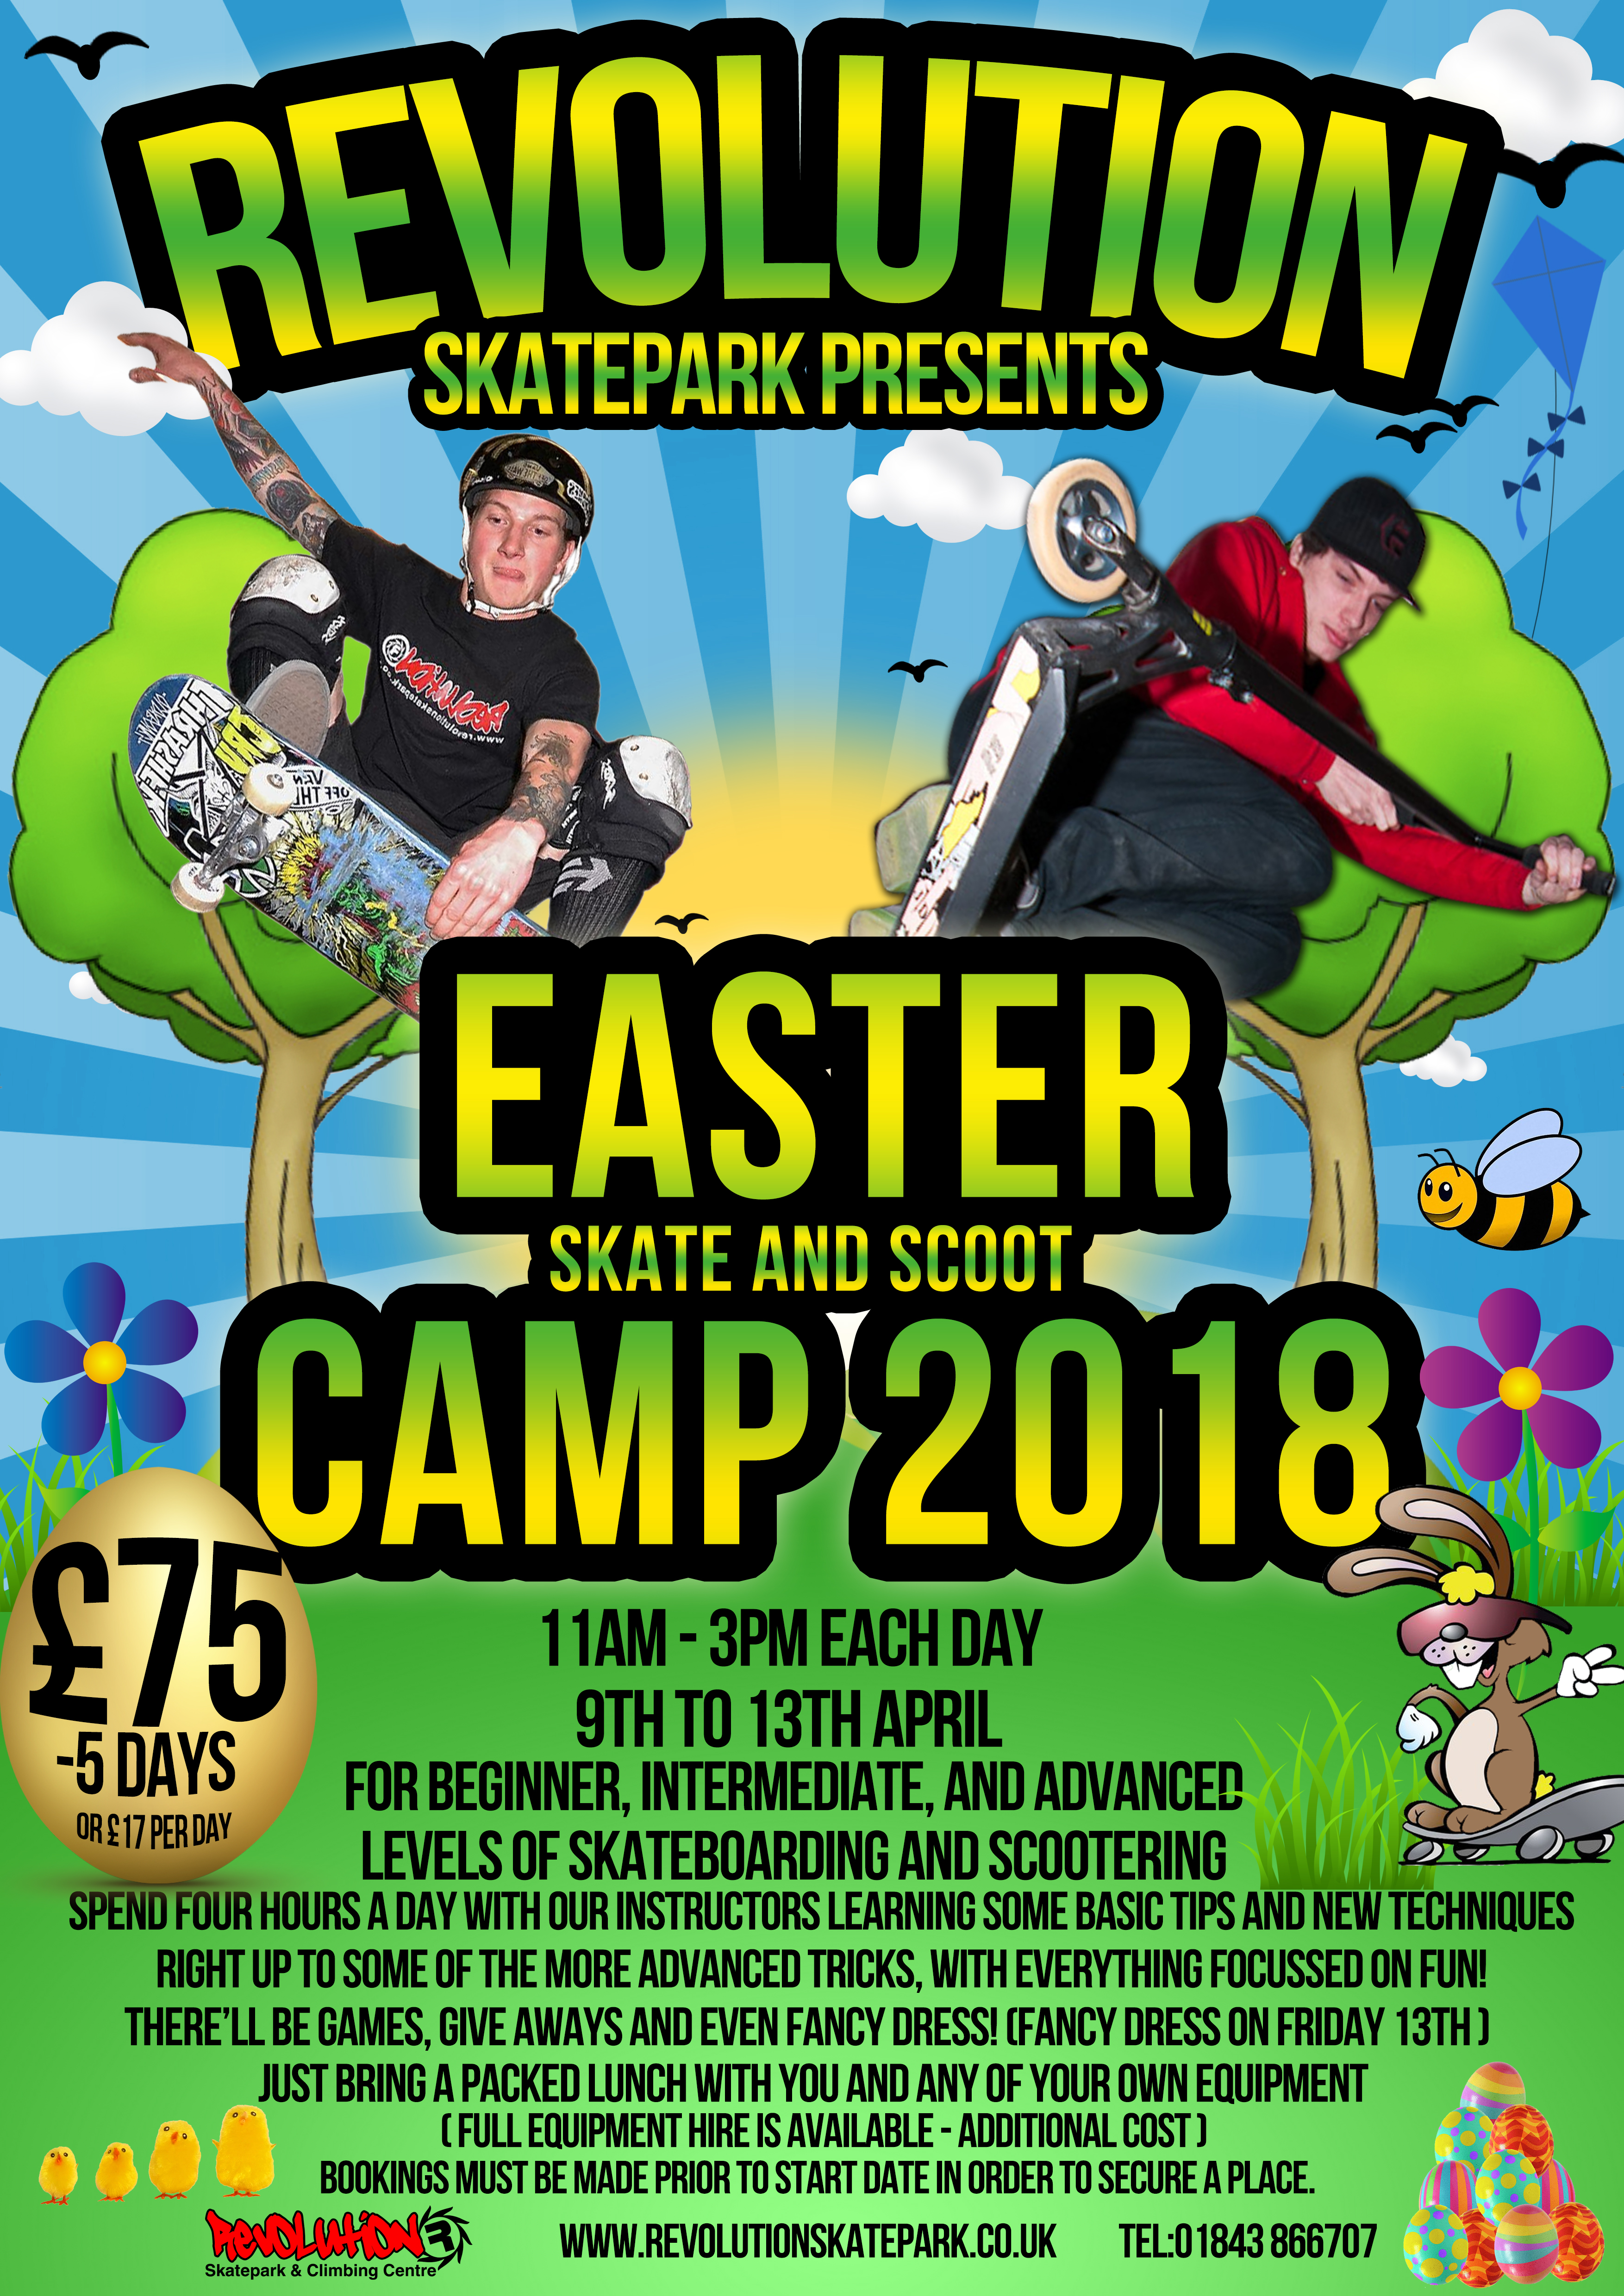 Skate and Scoot Camp - Easter